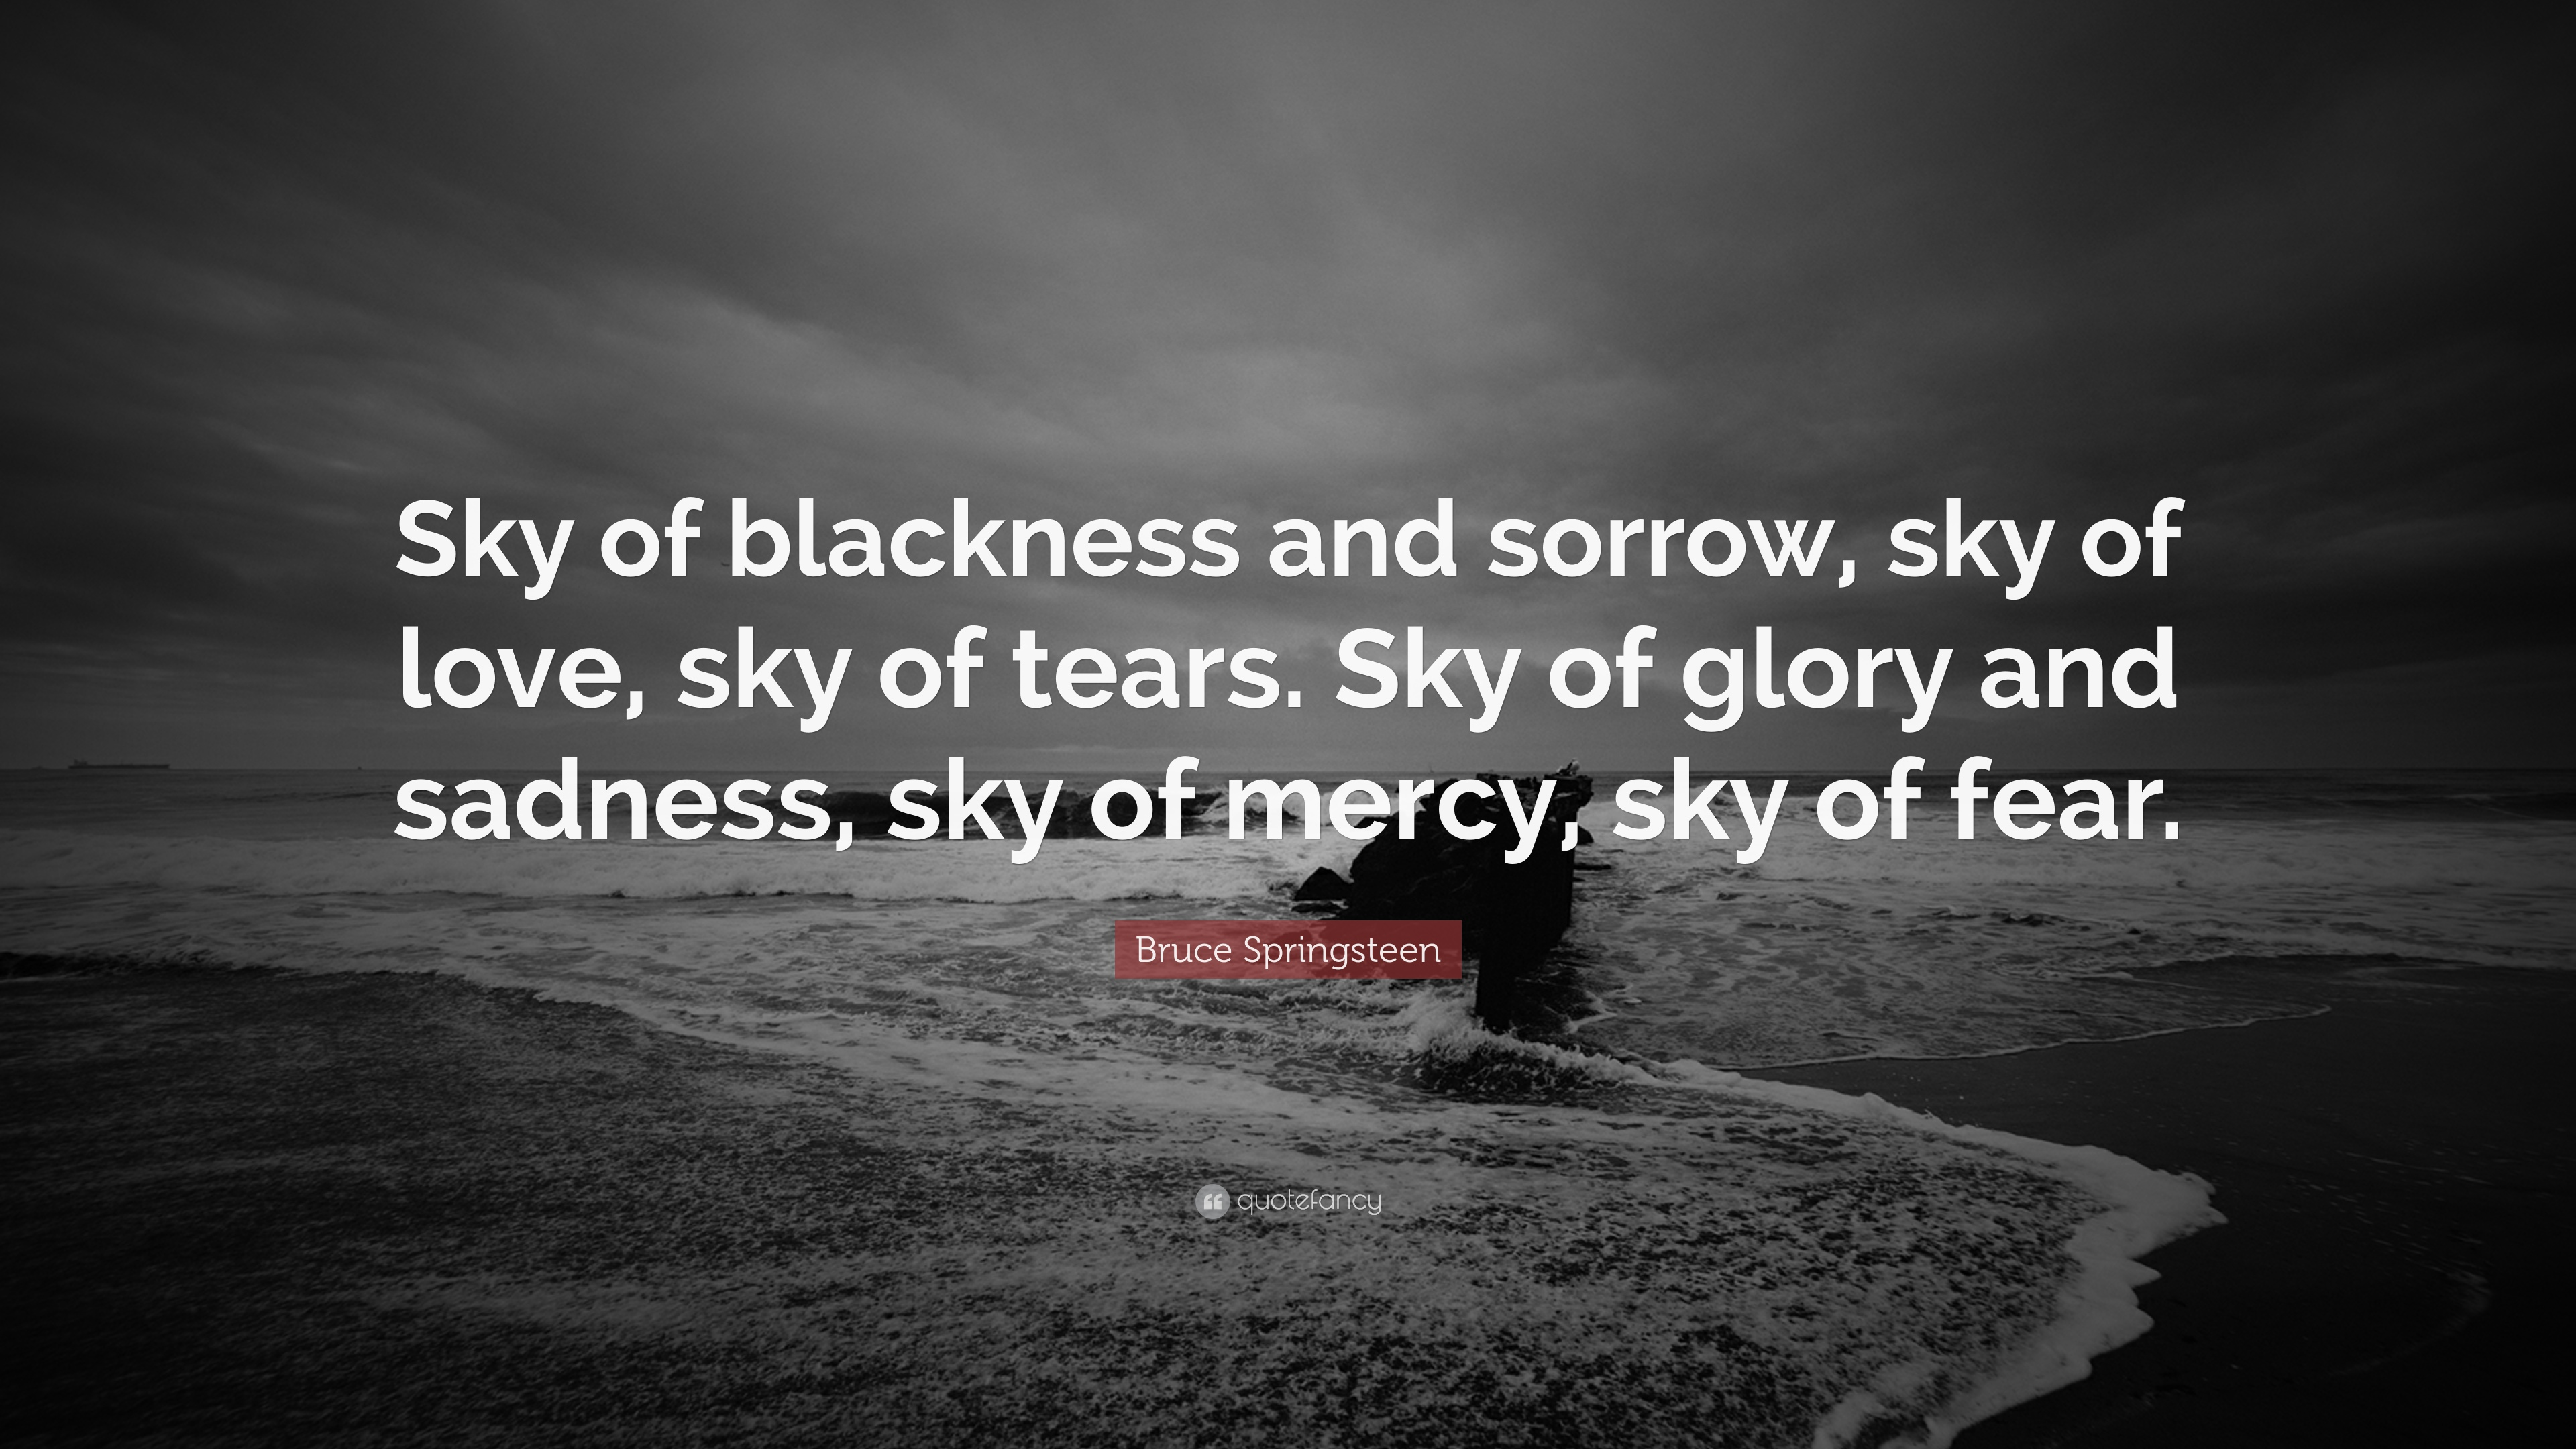 Roald Dahl Quotes Wallpaper Bruce Springsteen Quote Sky Of Blackness And Sorrow Sky